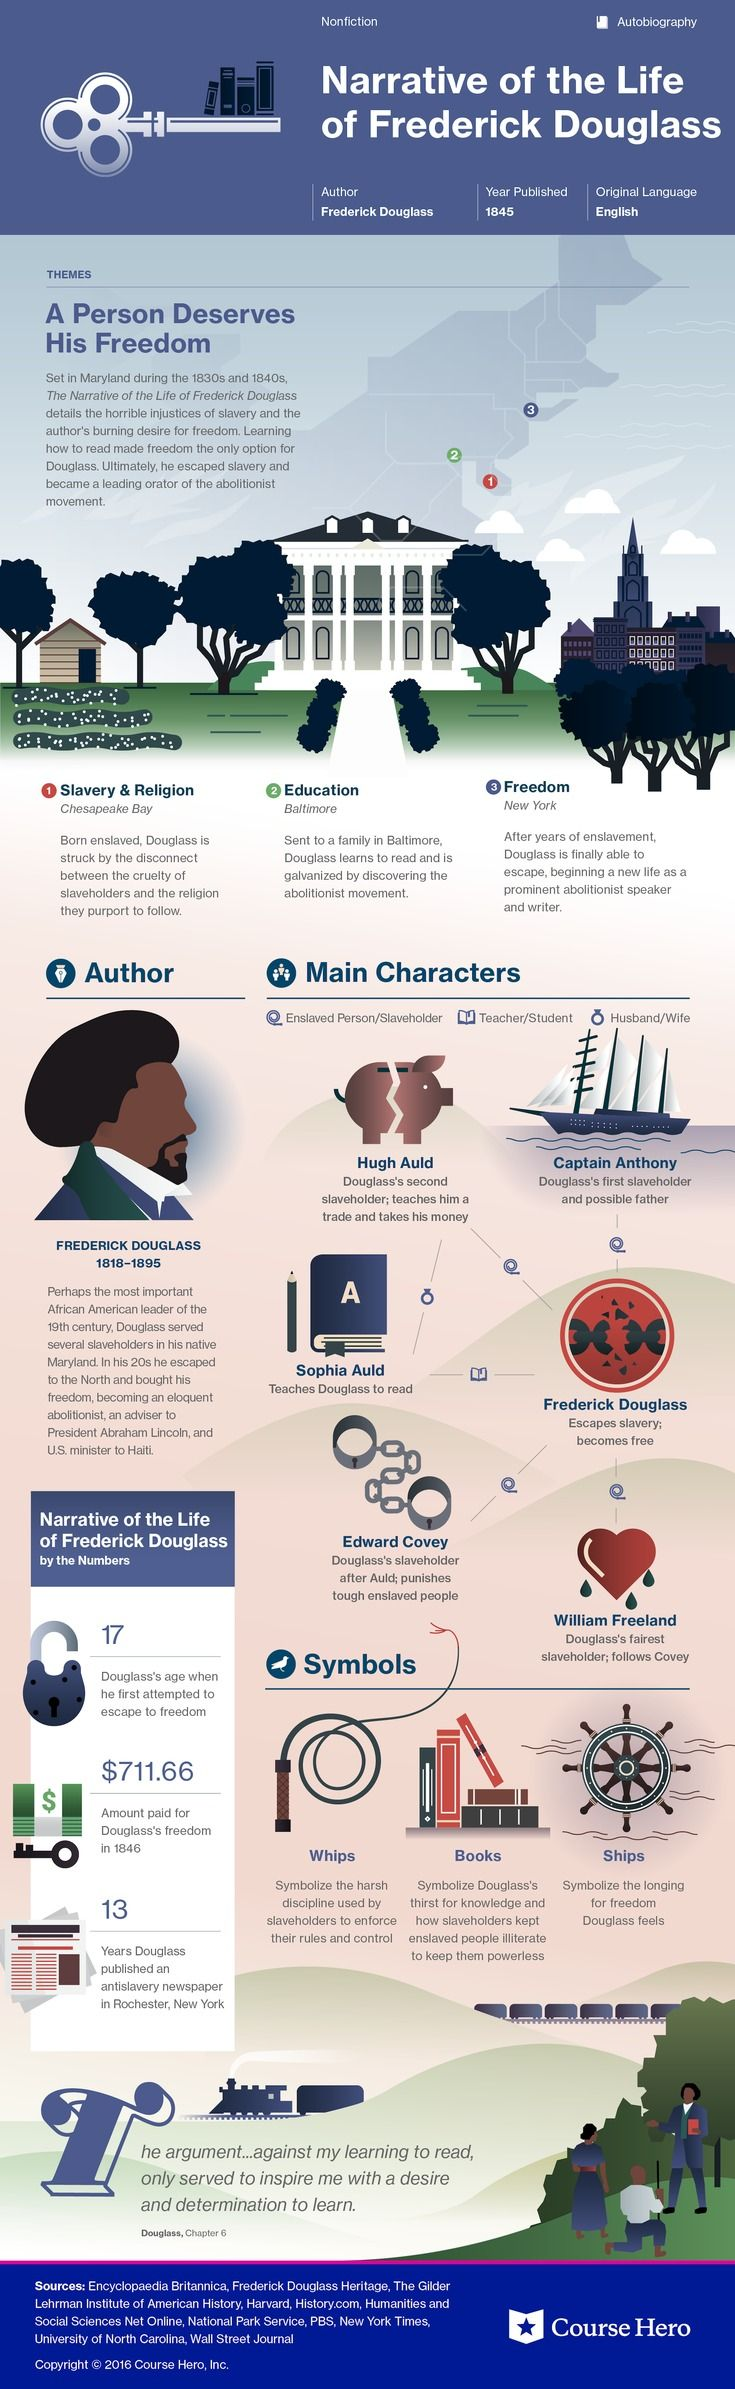 17 best ideas about frederick douglass narrative frederick douglass s narrative of the life of frederick douglass infographic to help you understand everything about the book visually learn all about the